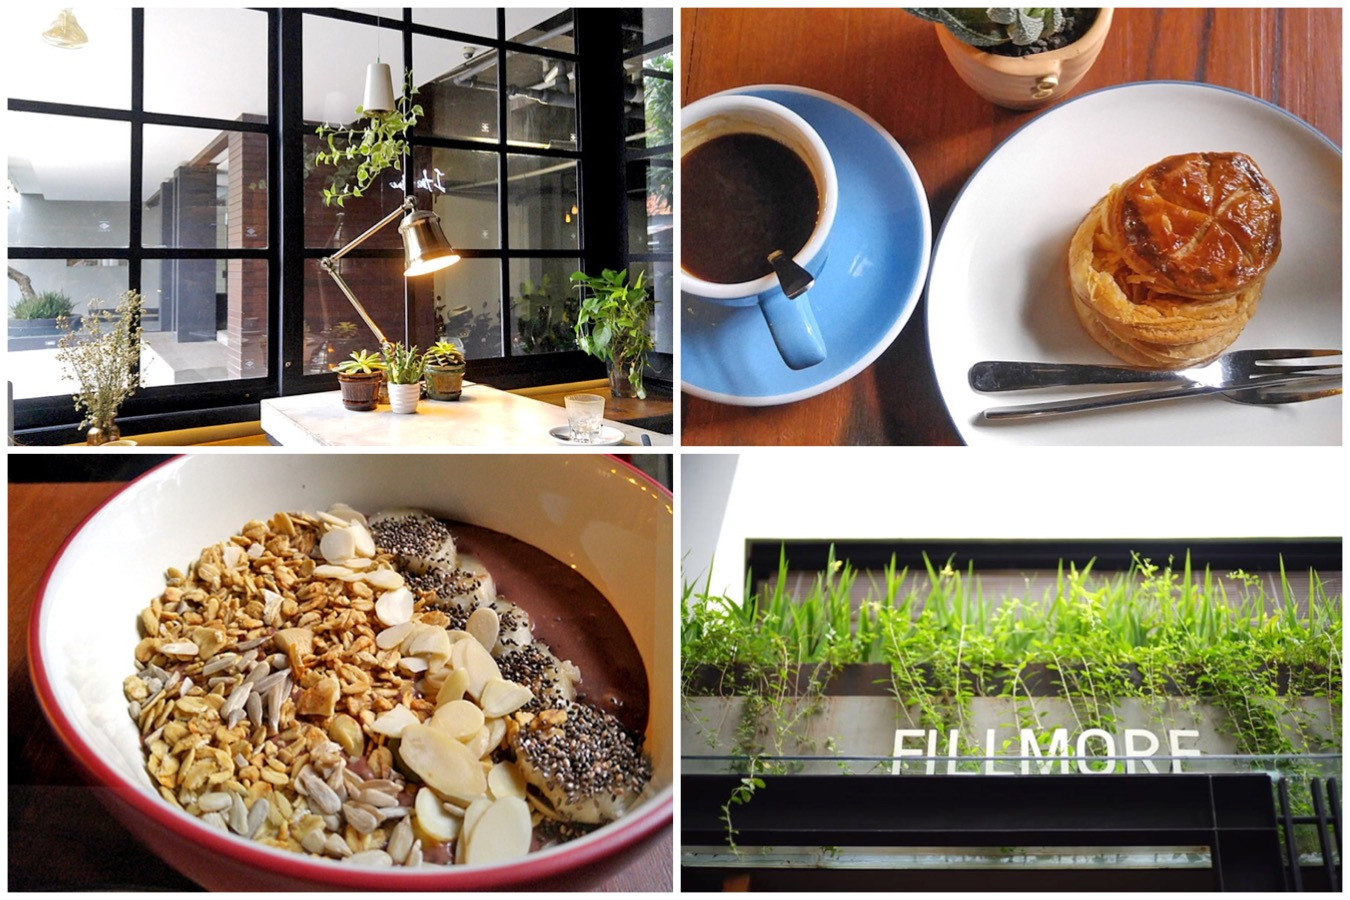 Fillmore Coffee - Hidden Café Gem At Kuningan, Jakarta. For Good Coffee And Smoothie Bowls